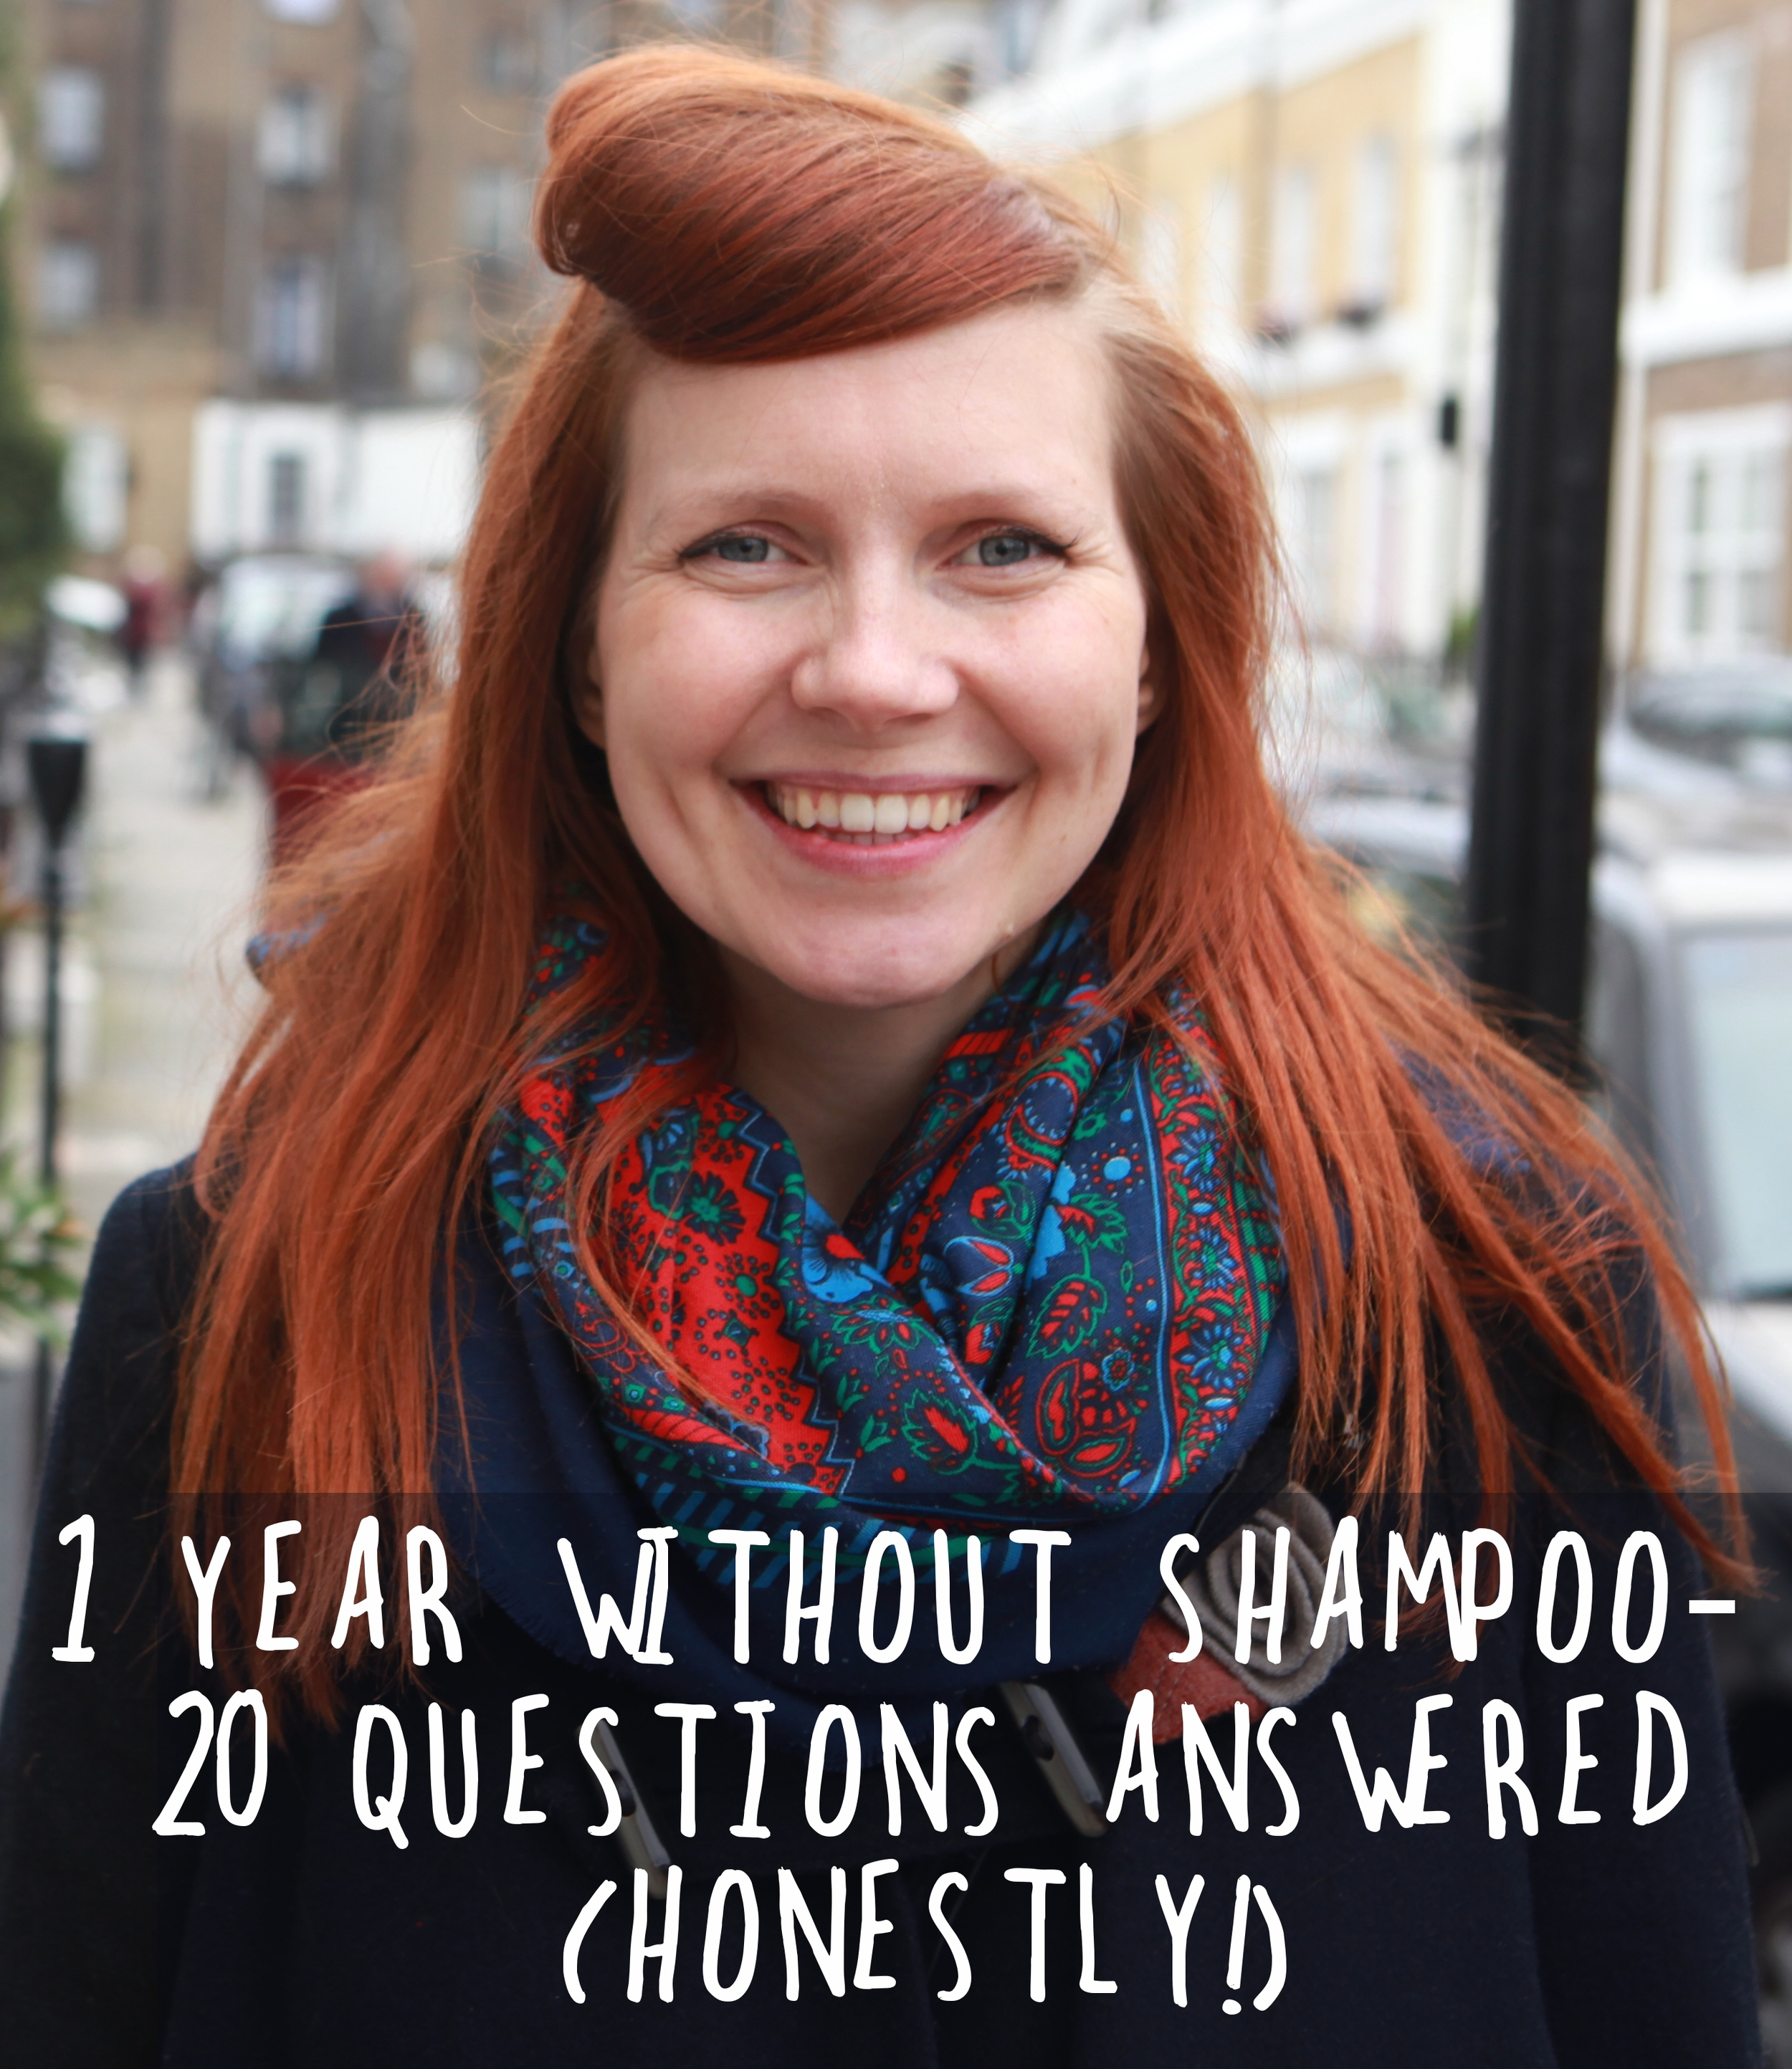 A year without shampoo - FAQ's answered honestly!